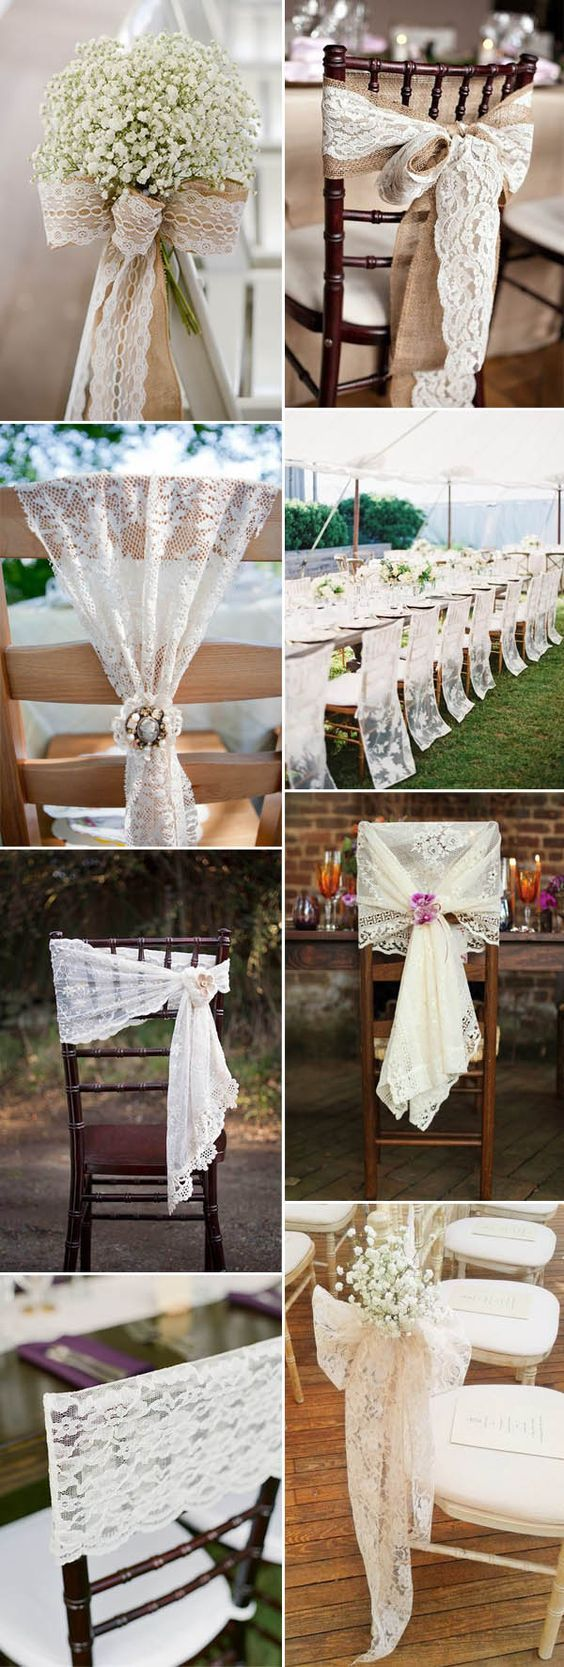 vintage wedding chair decor ideas with lace